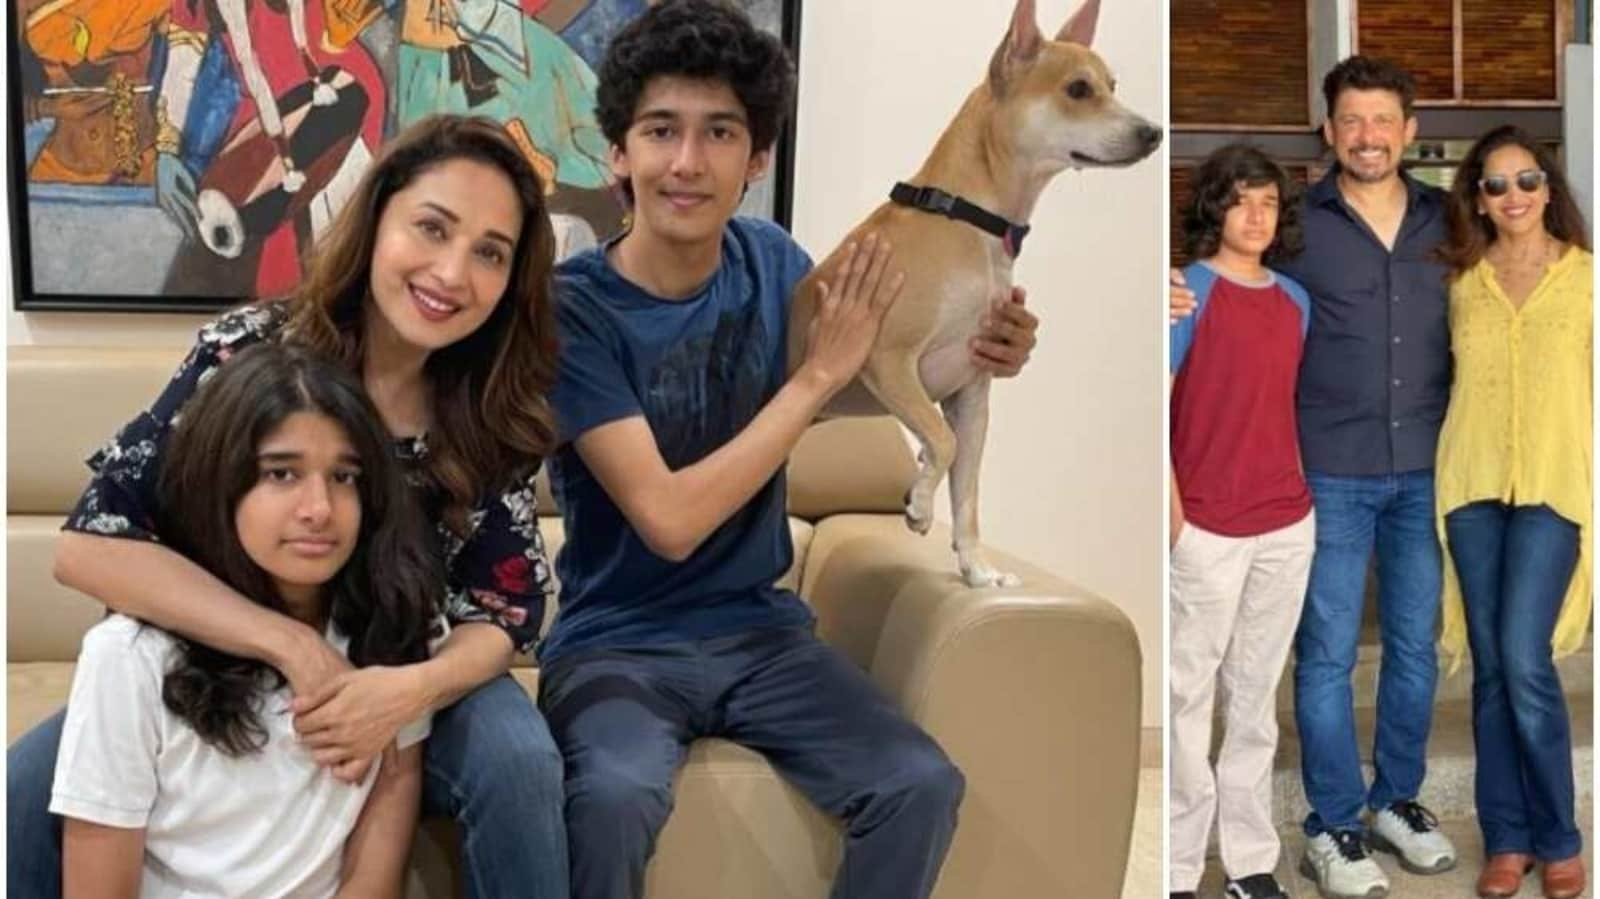 Madhuri Dixit wishes son Ryan on his 16th birthday: 'You fill my heart with joy & pride', Don't miss his hairstyle - Hindustan Times